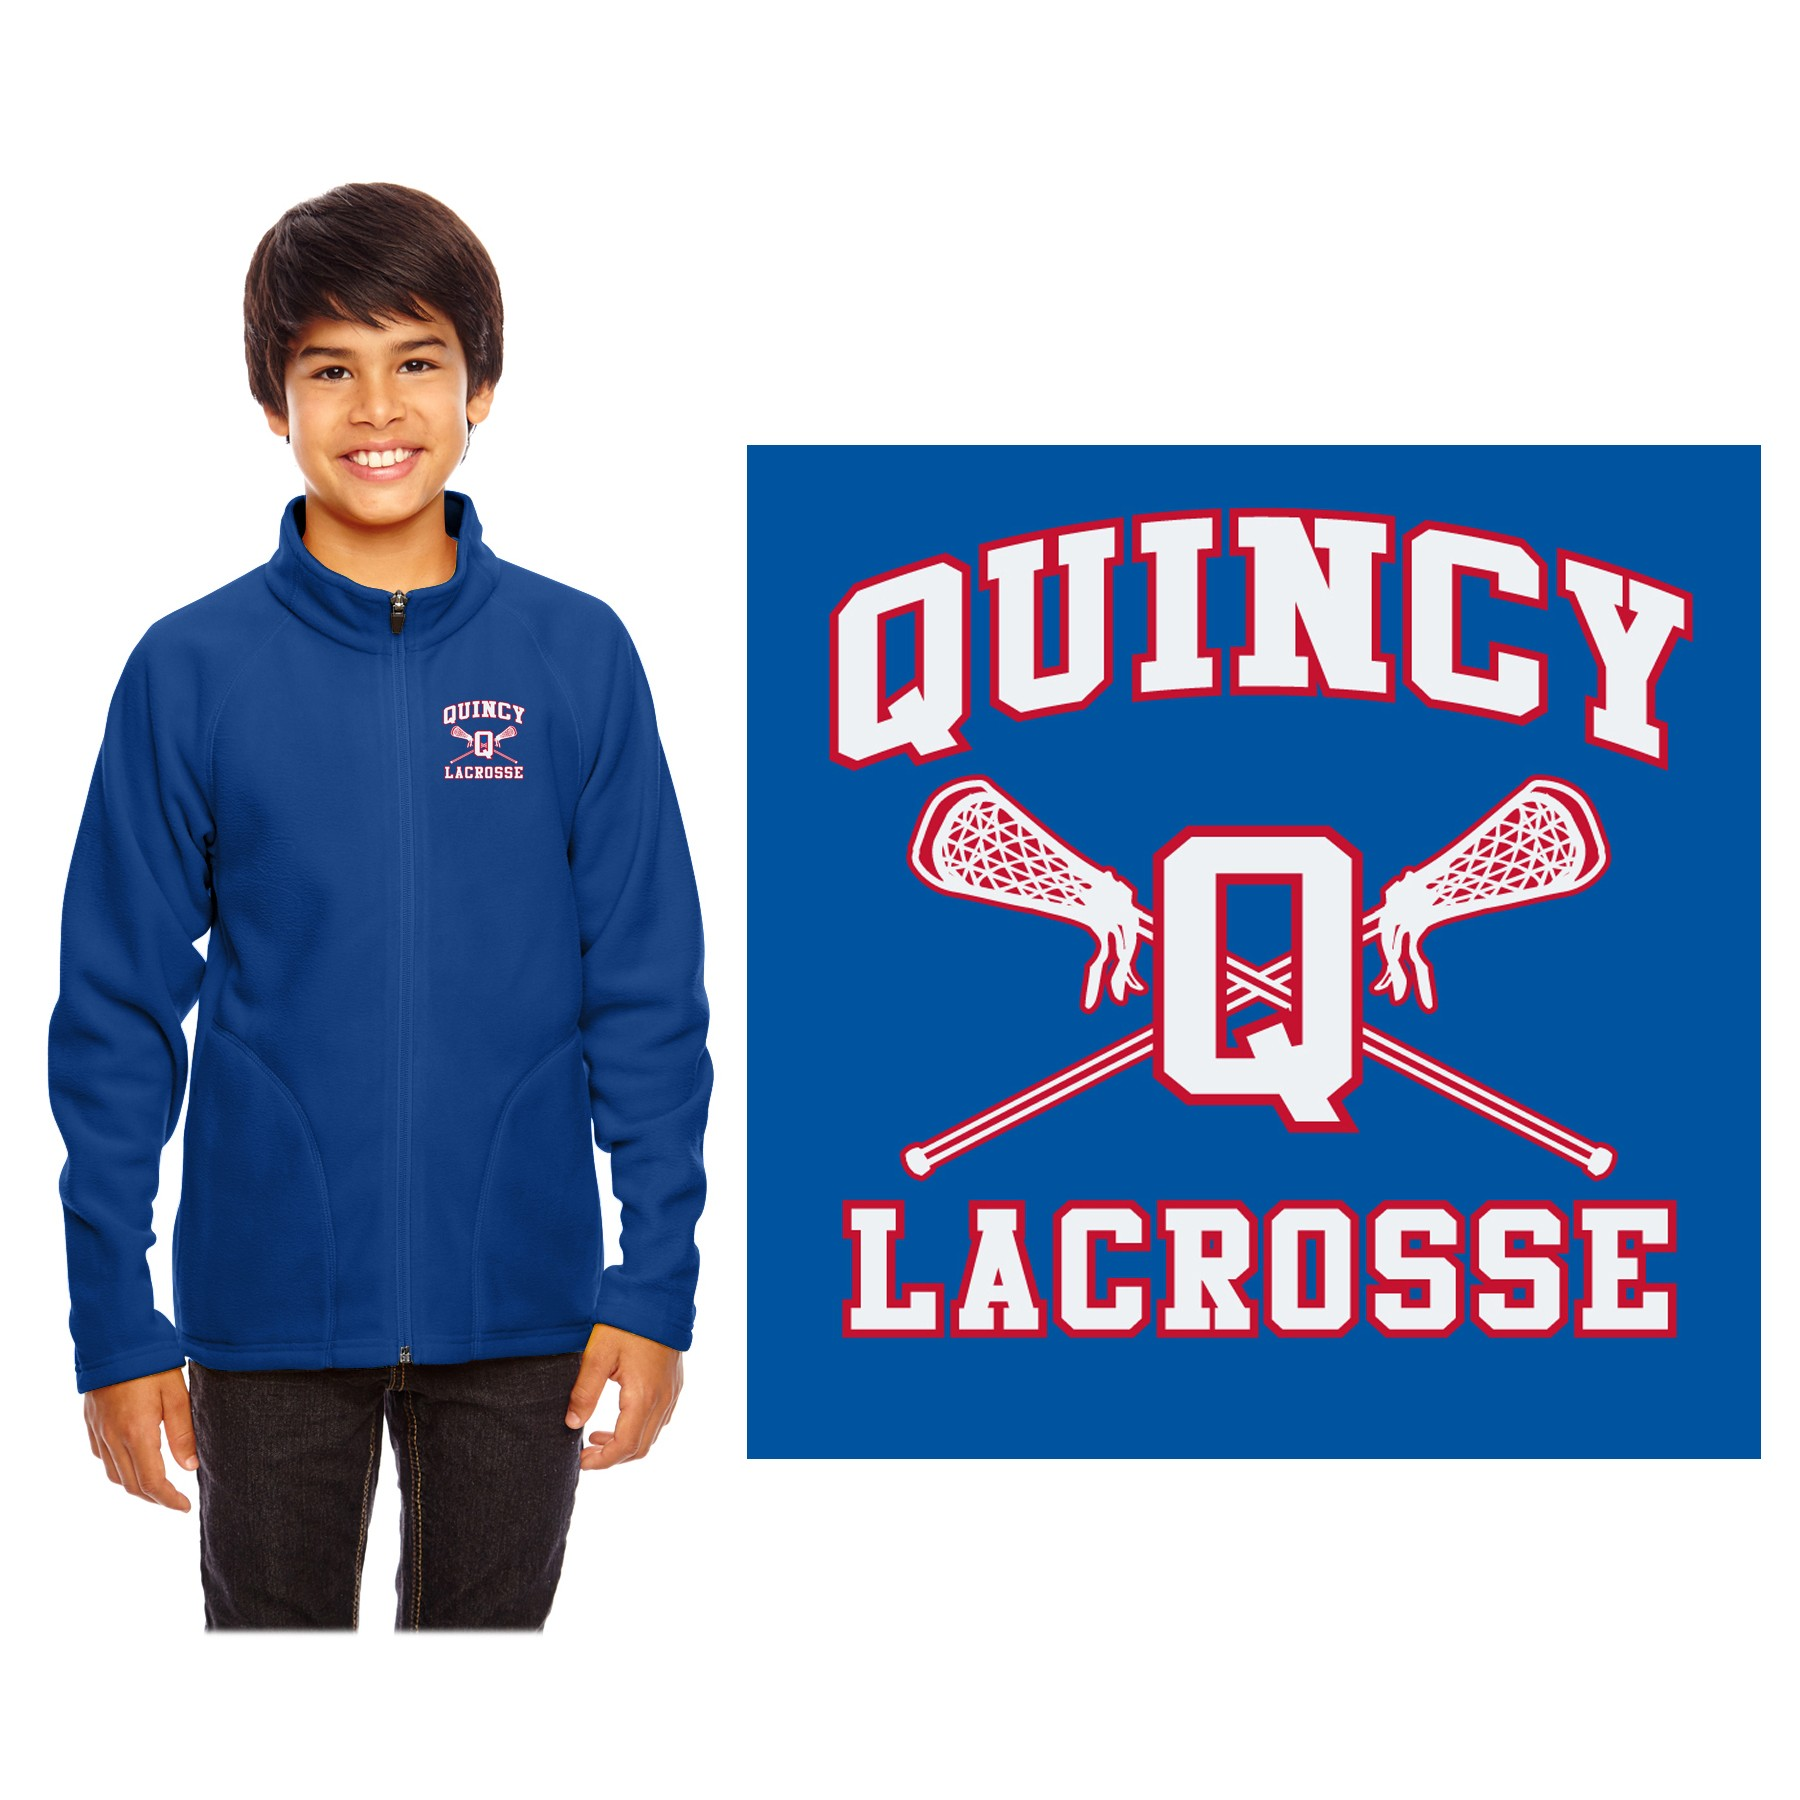 Quincy Lacrosse Team 365 Youth Campus Microfleece Jacket TT90Y